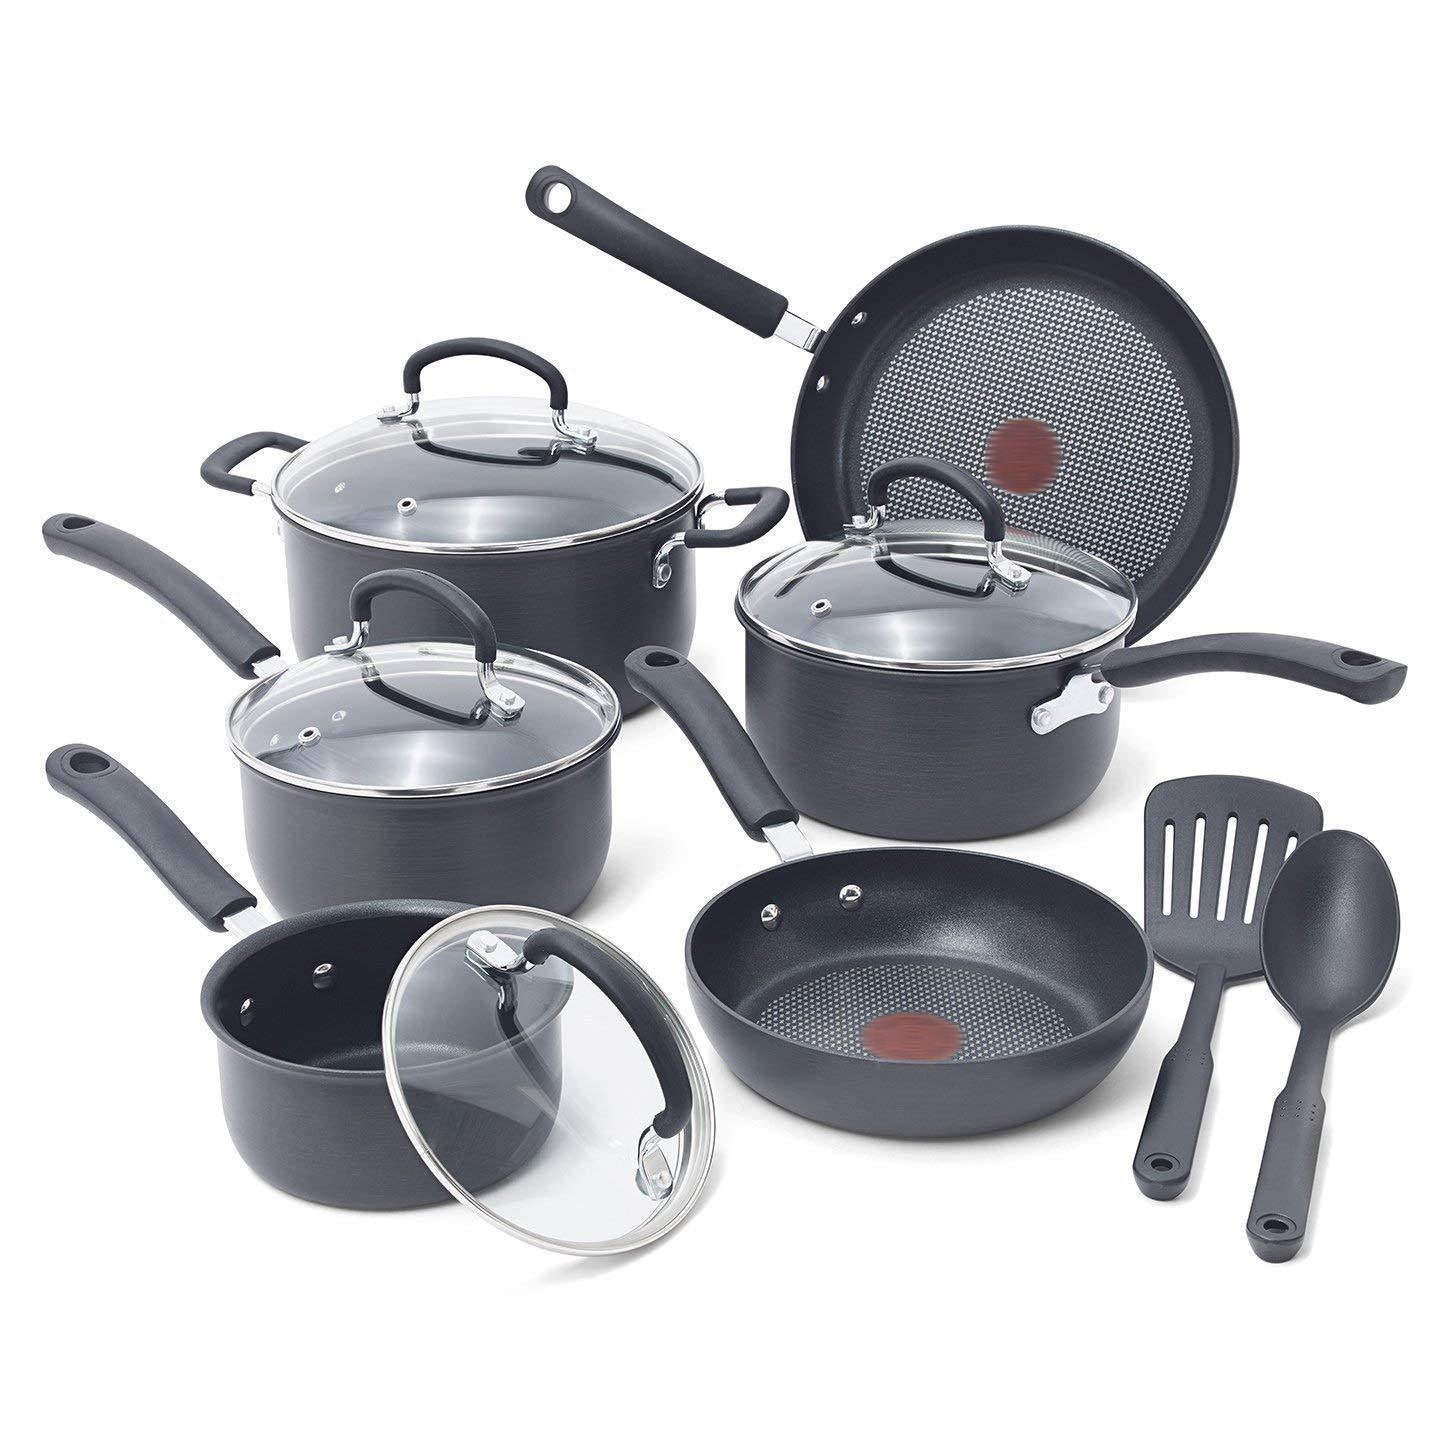 Nonstick Pots and Pans Set, 12 Piece,Gray